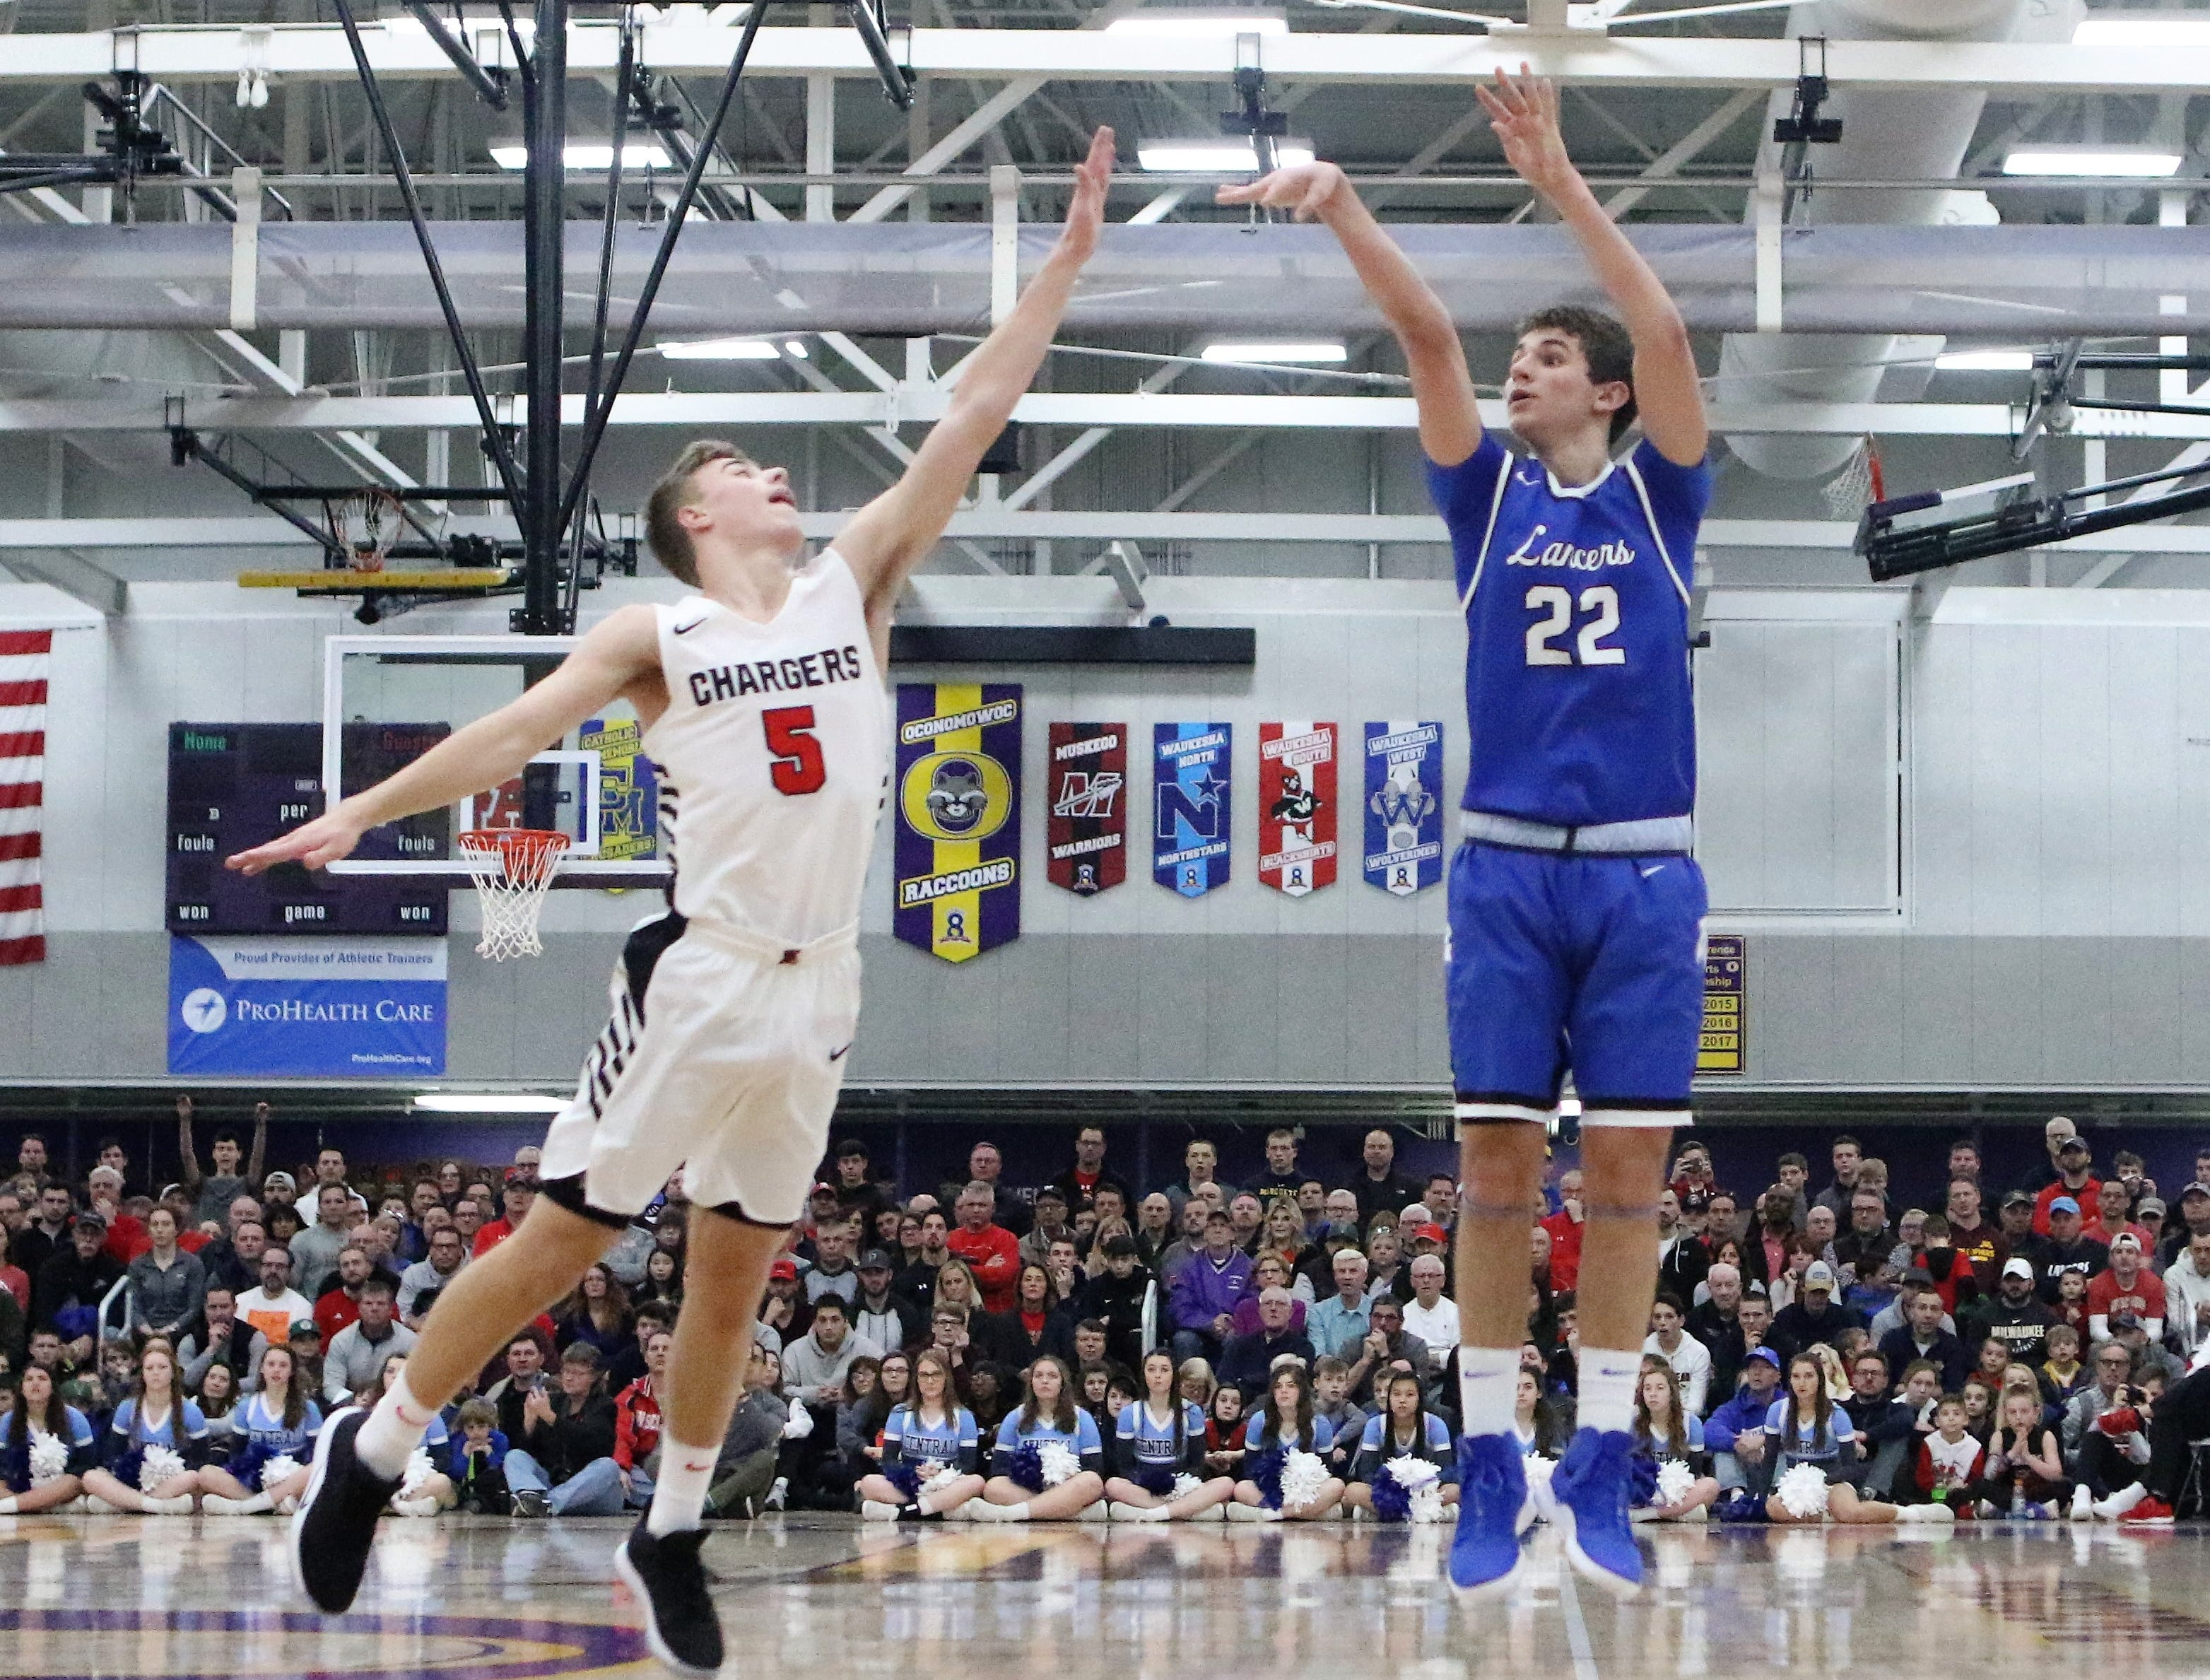 Brookfield Central guard Ben Nau fires a three-pointer over Sussex Hamilton guard Carson Smith during a WIAA sectional final on March 9, 2019.